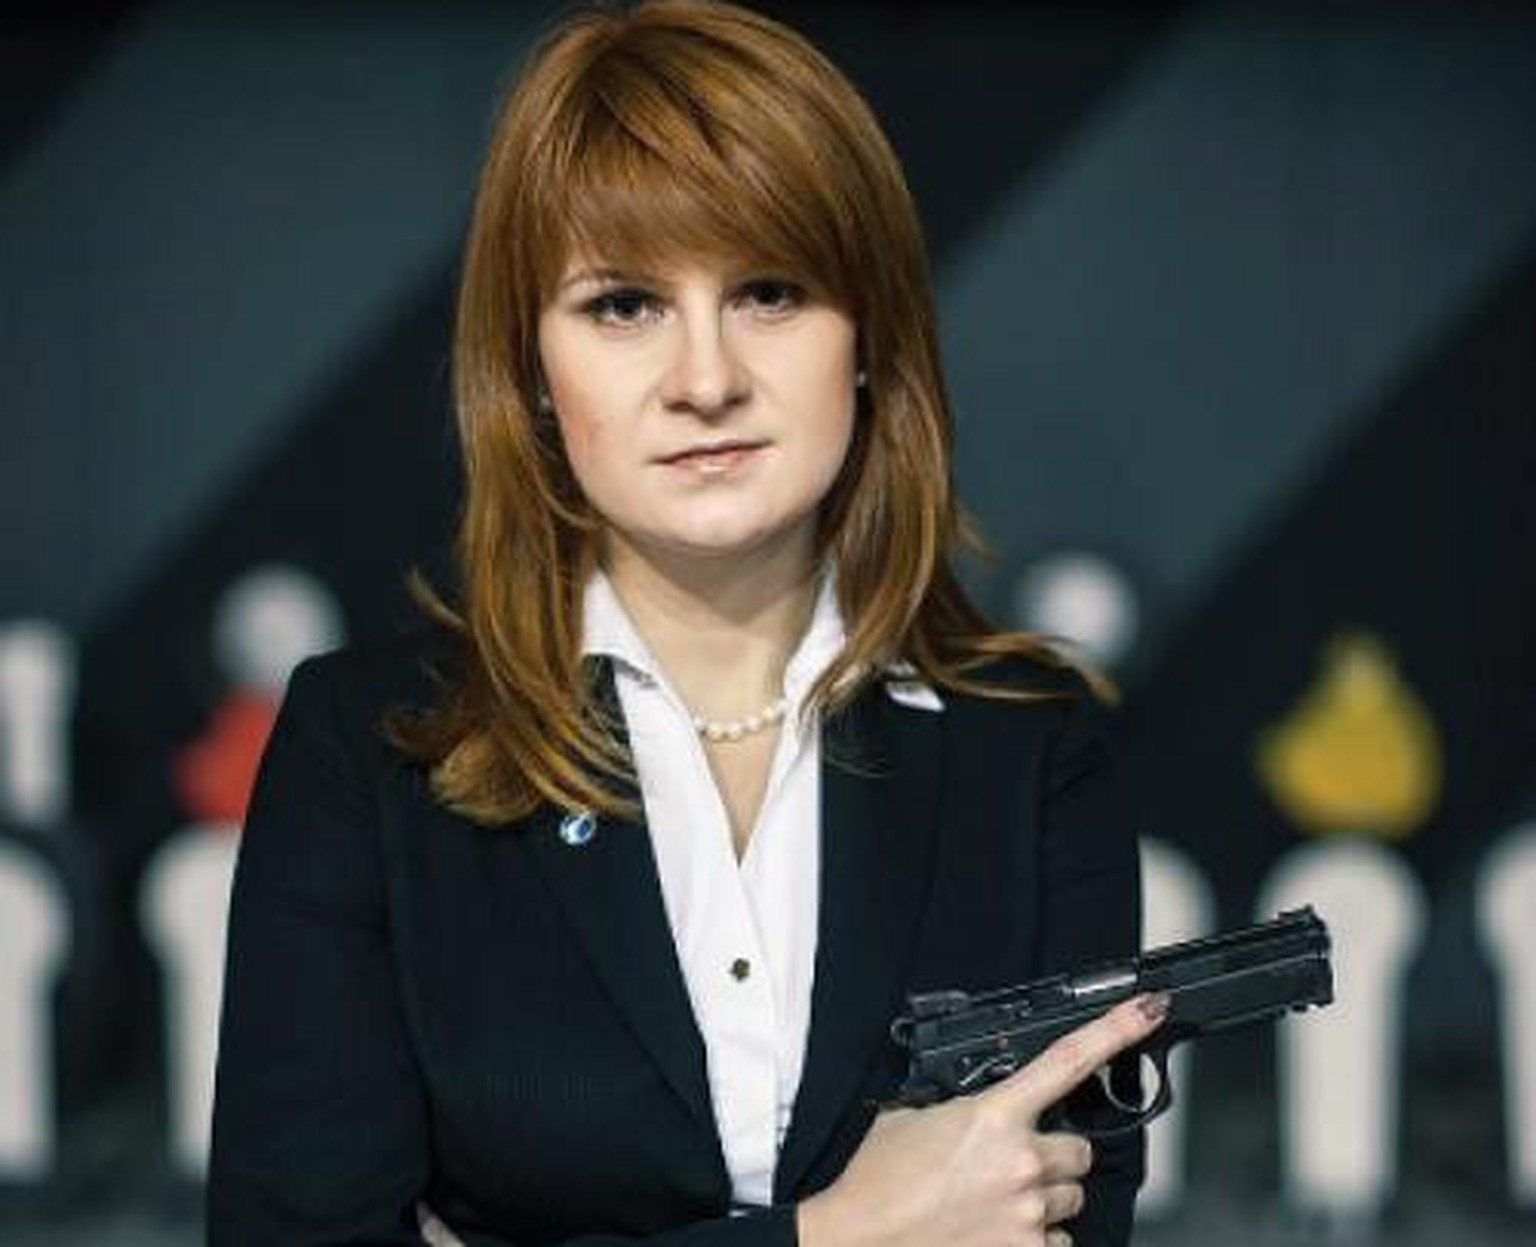 epa06897776 An undated handout picture made available by the Press Service of the Civic Chamber of the Russian Federation on chamber's official website shows  'The Right to Bear Weapons' Public Organization's Board Chairman Maria Butina posing with a gun in Moscow, Russia. Russian citizen Maria Butina, 29, was arrested in the United States on suspicion of being engaged in conspiracy against the U.S. and acting as an unregistered Russian agent.  EPA/Press Service of Civic Chamber of the Russian Federation/HANDOUT  HANDOUT EDITORIAL USE ONLY/NO SALES